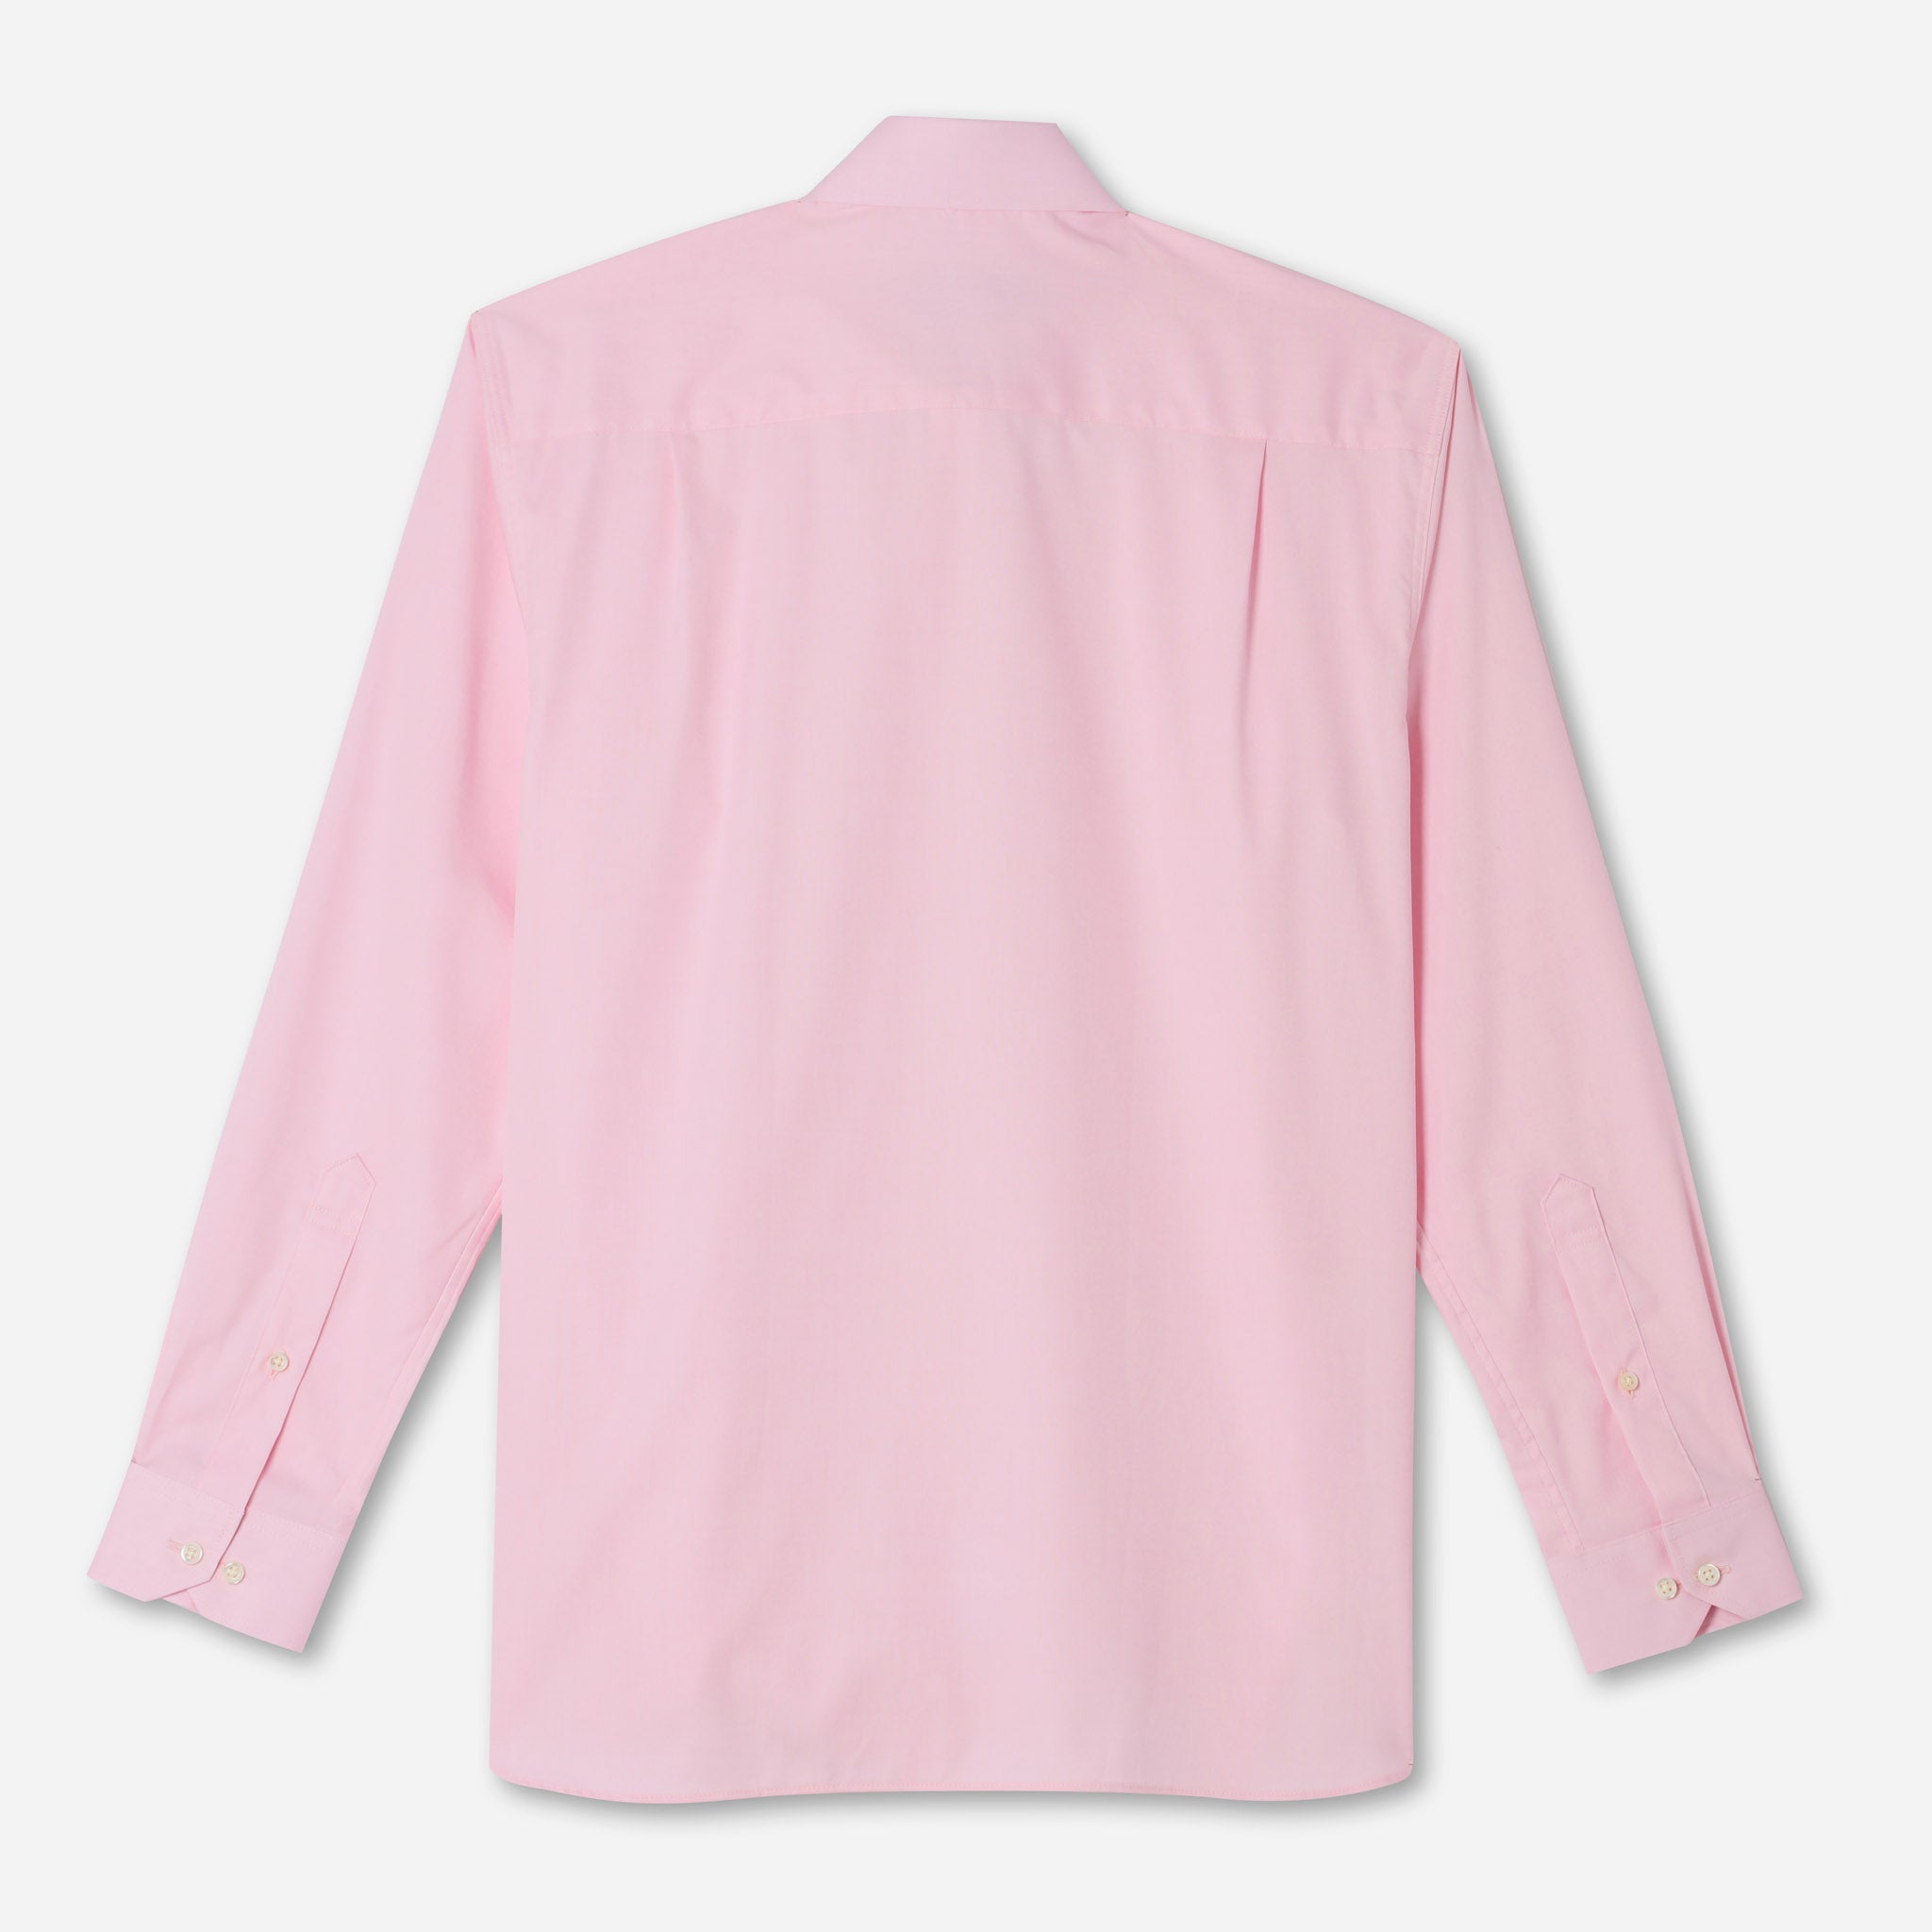 Mason Everyday Premium Shirt in Pink Oxford Solid